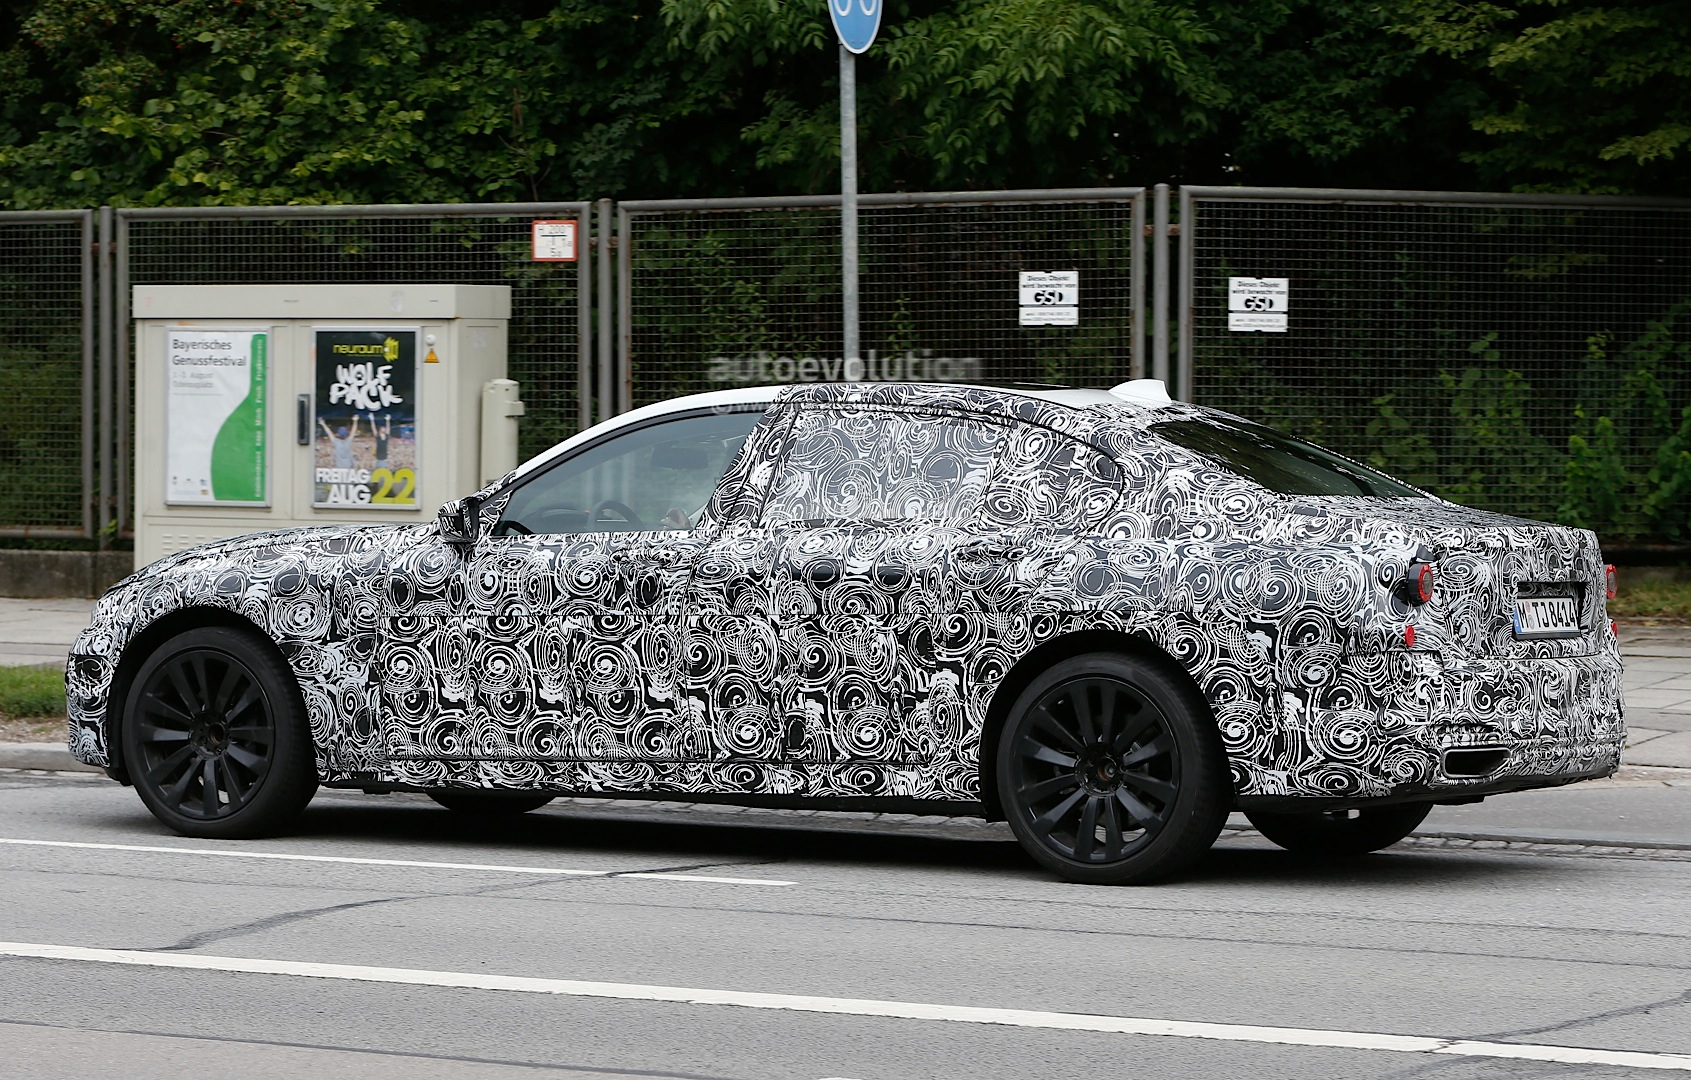 spyshots-2016-bmw-7-series-g11-to-receive-new-engines-and-headlight-design-video_4.jpg